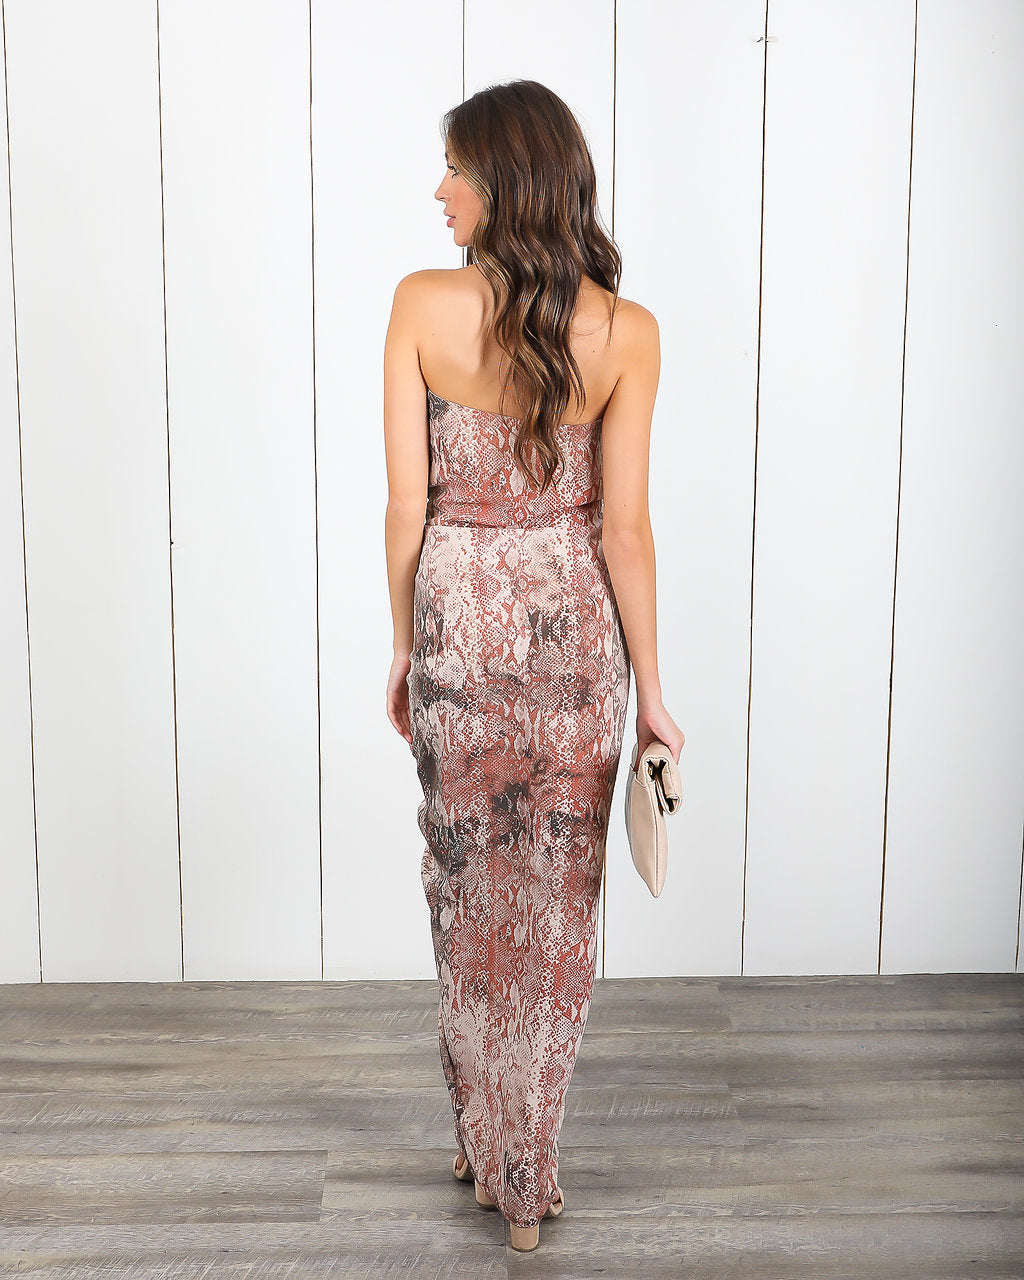 Pretty Poison Ruched Strapless Dress - FINAL SALE – VICI